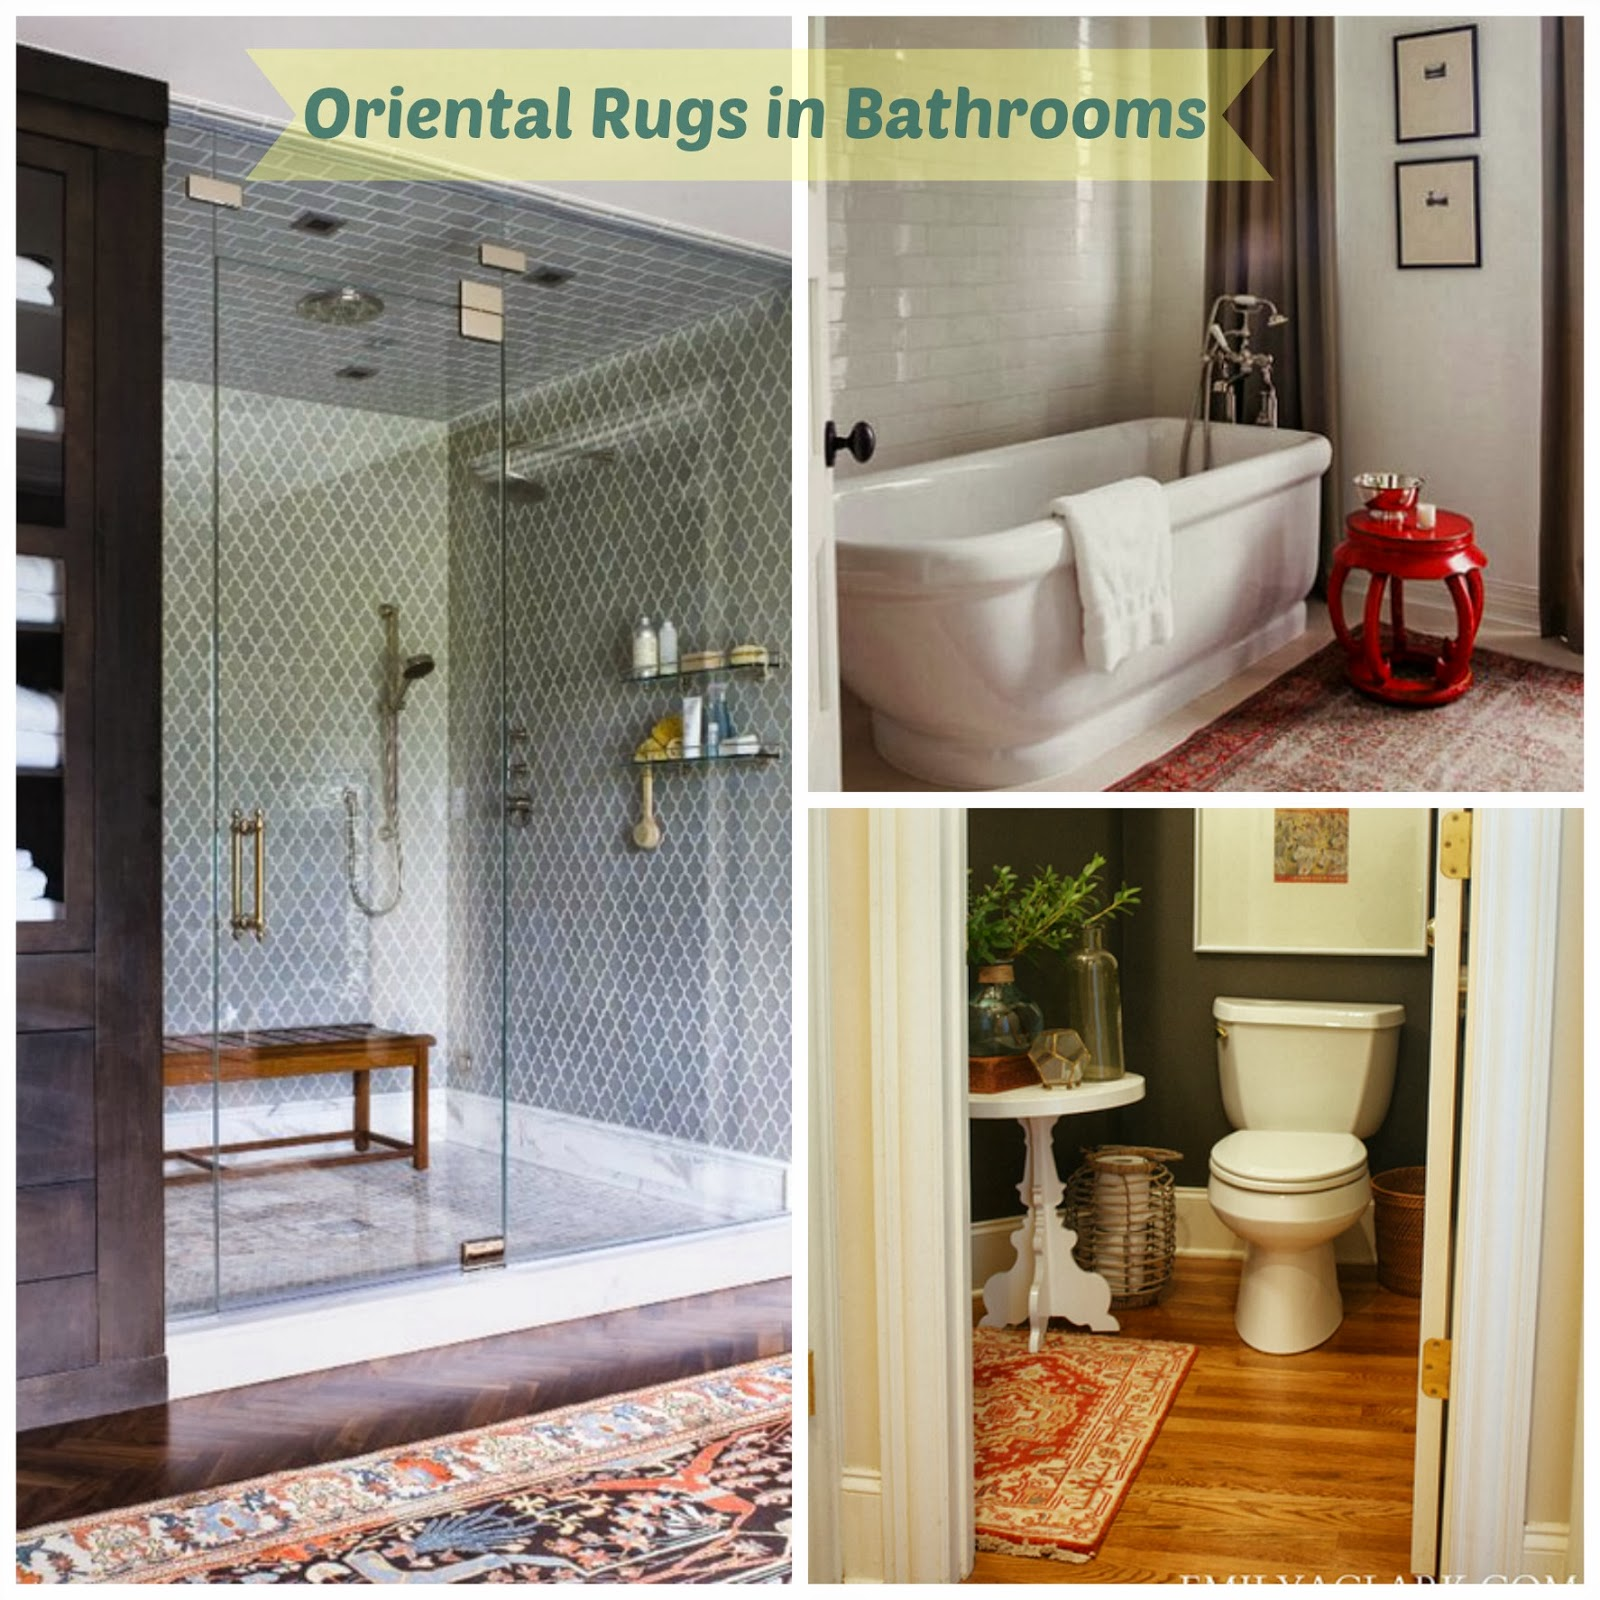 Rugs for the bathroom